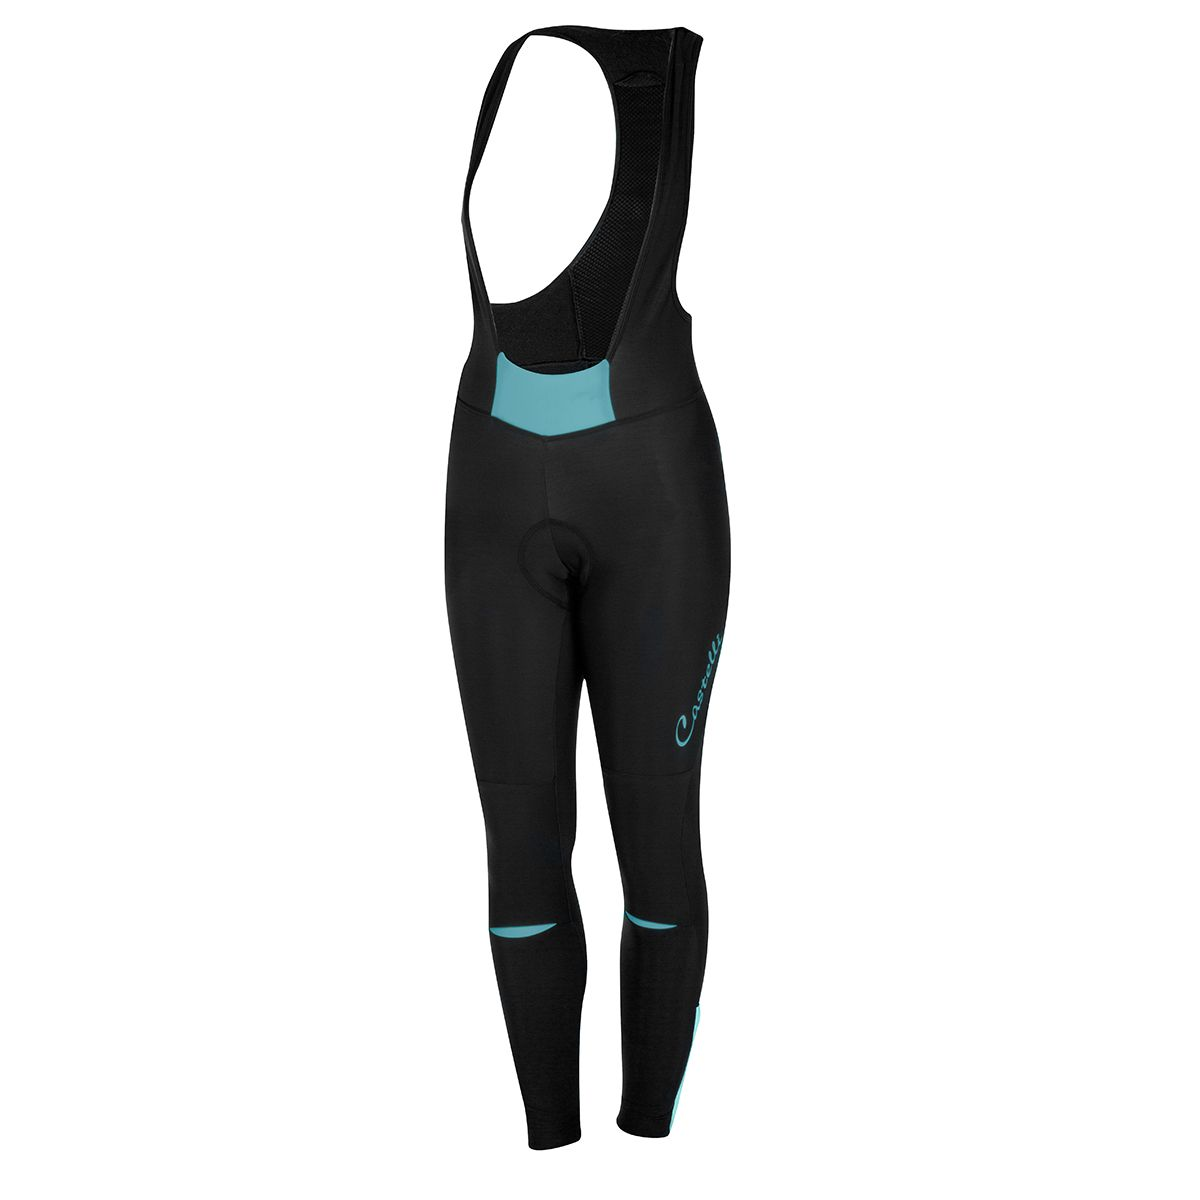 CHIC BIBTIGHT for women